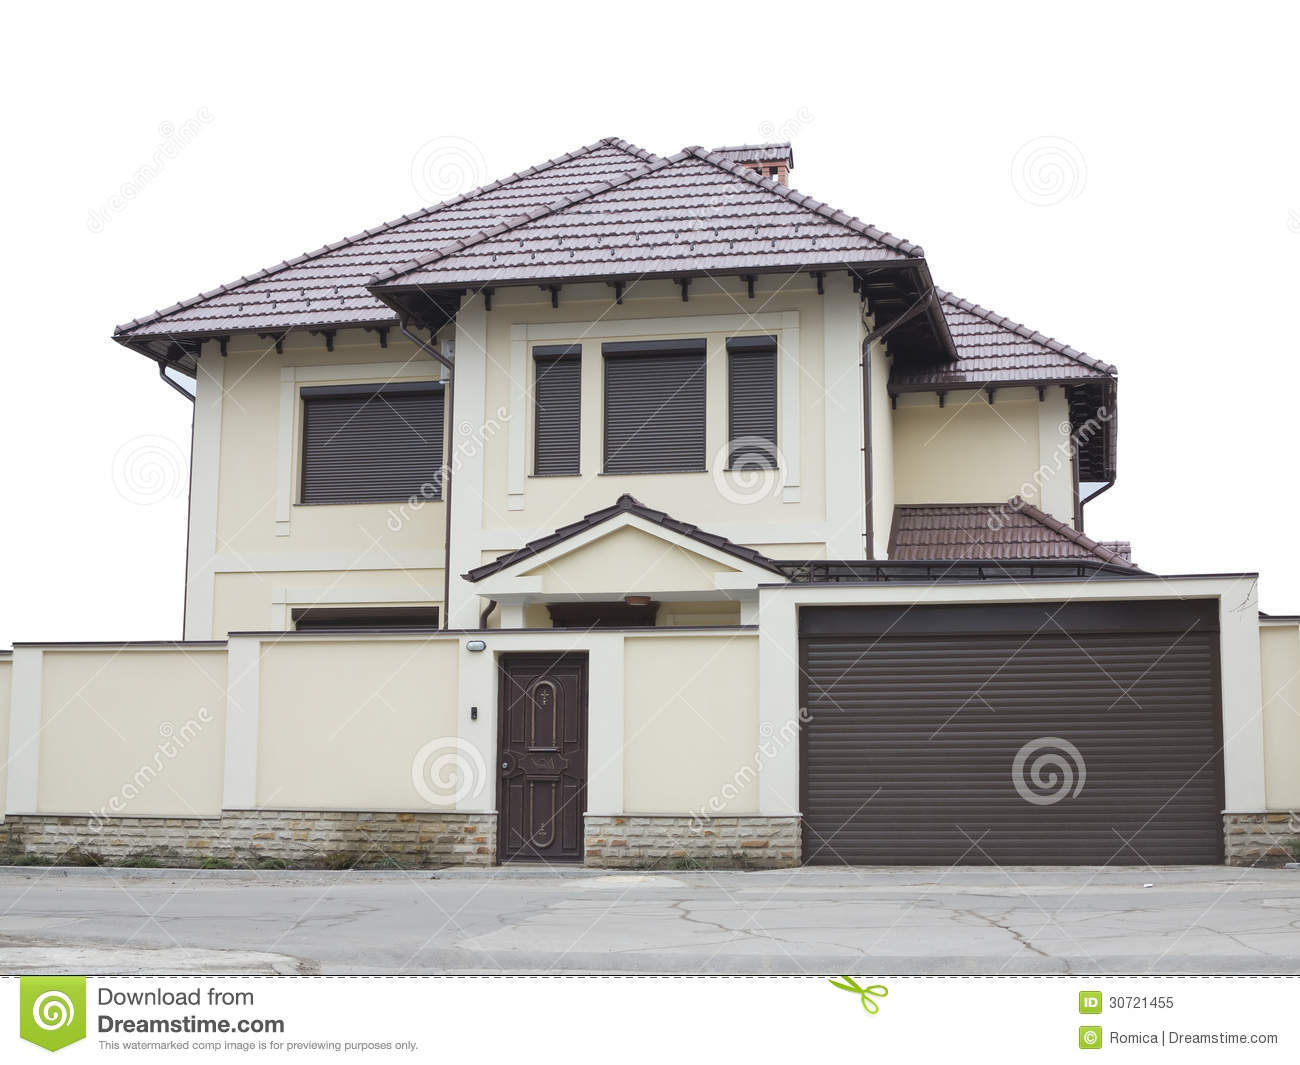 Just Builded Luxury House Over White Background Royalty